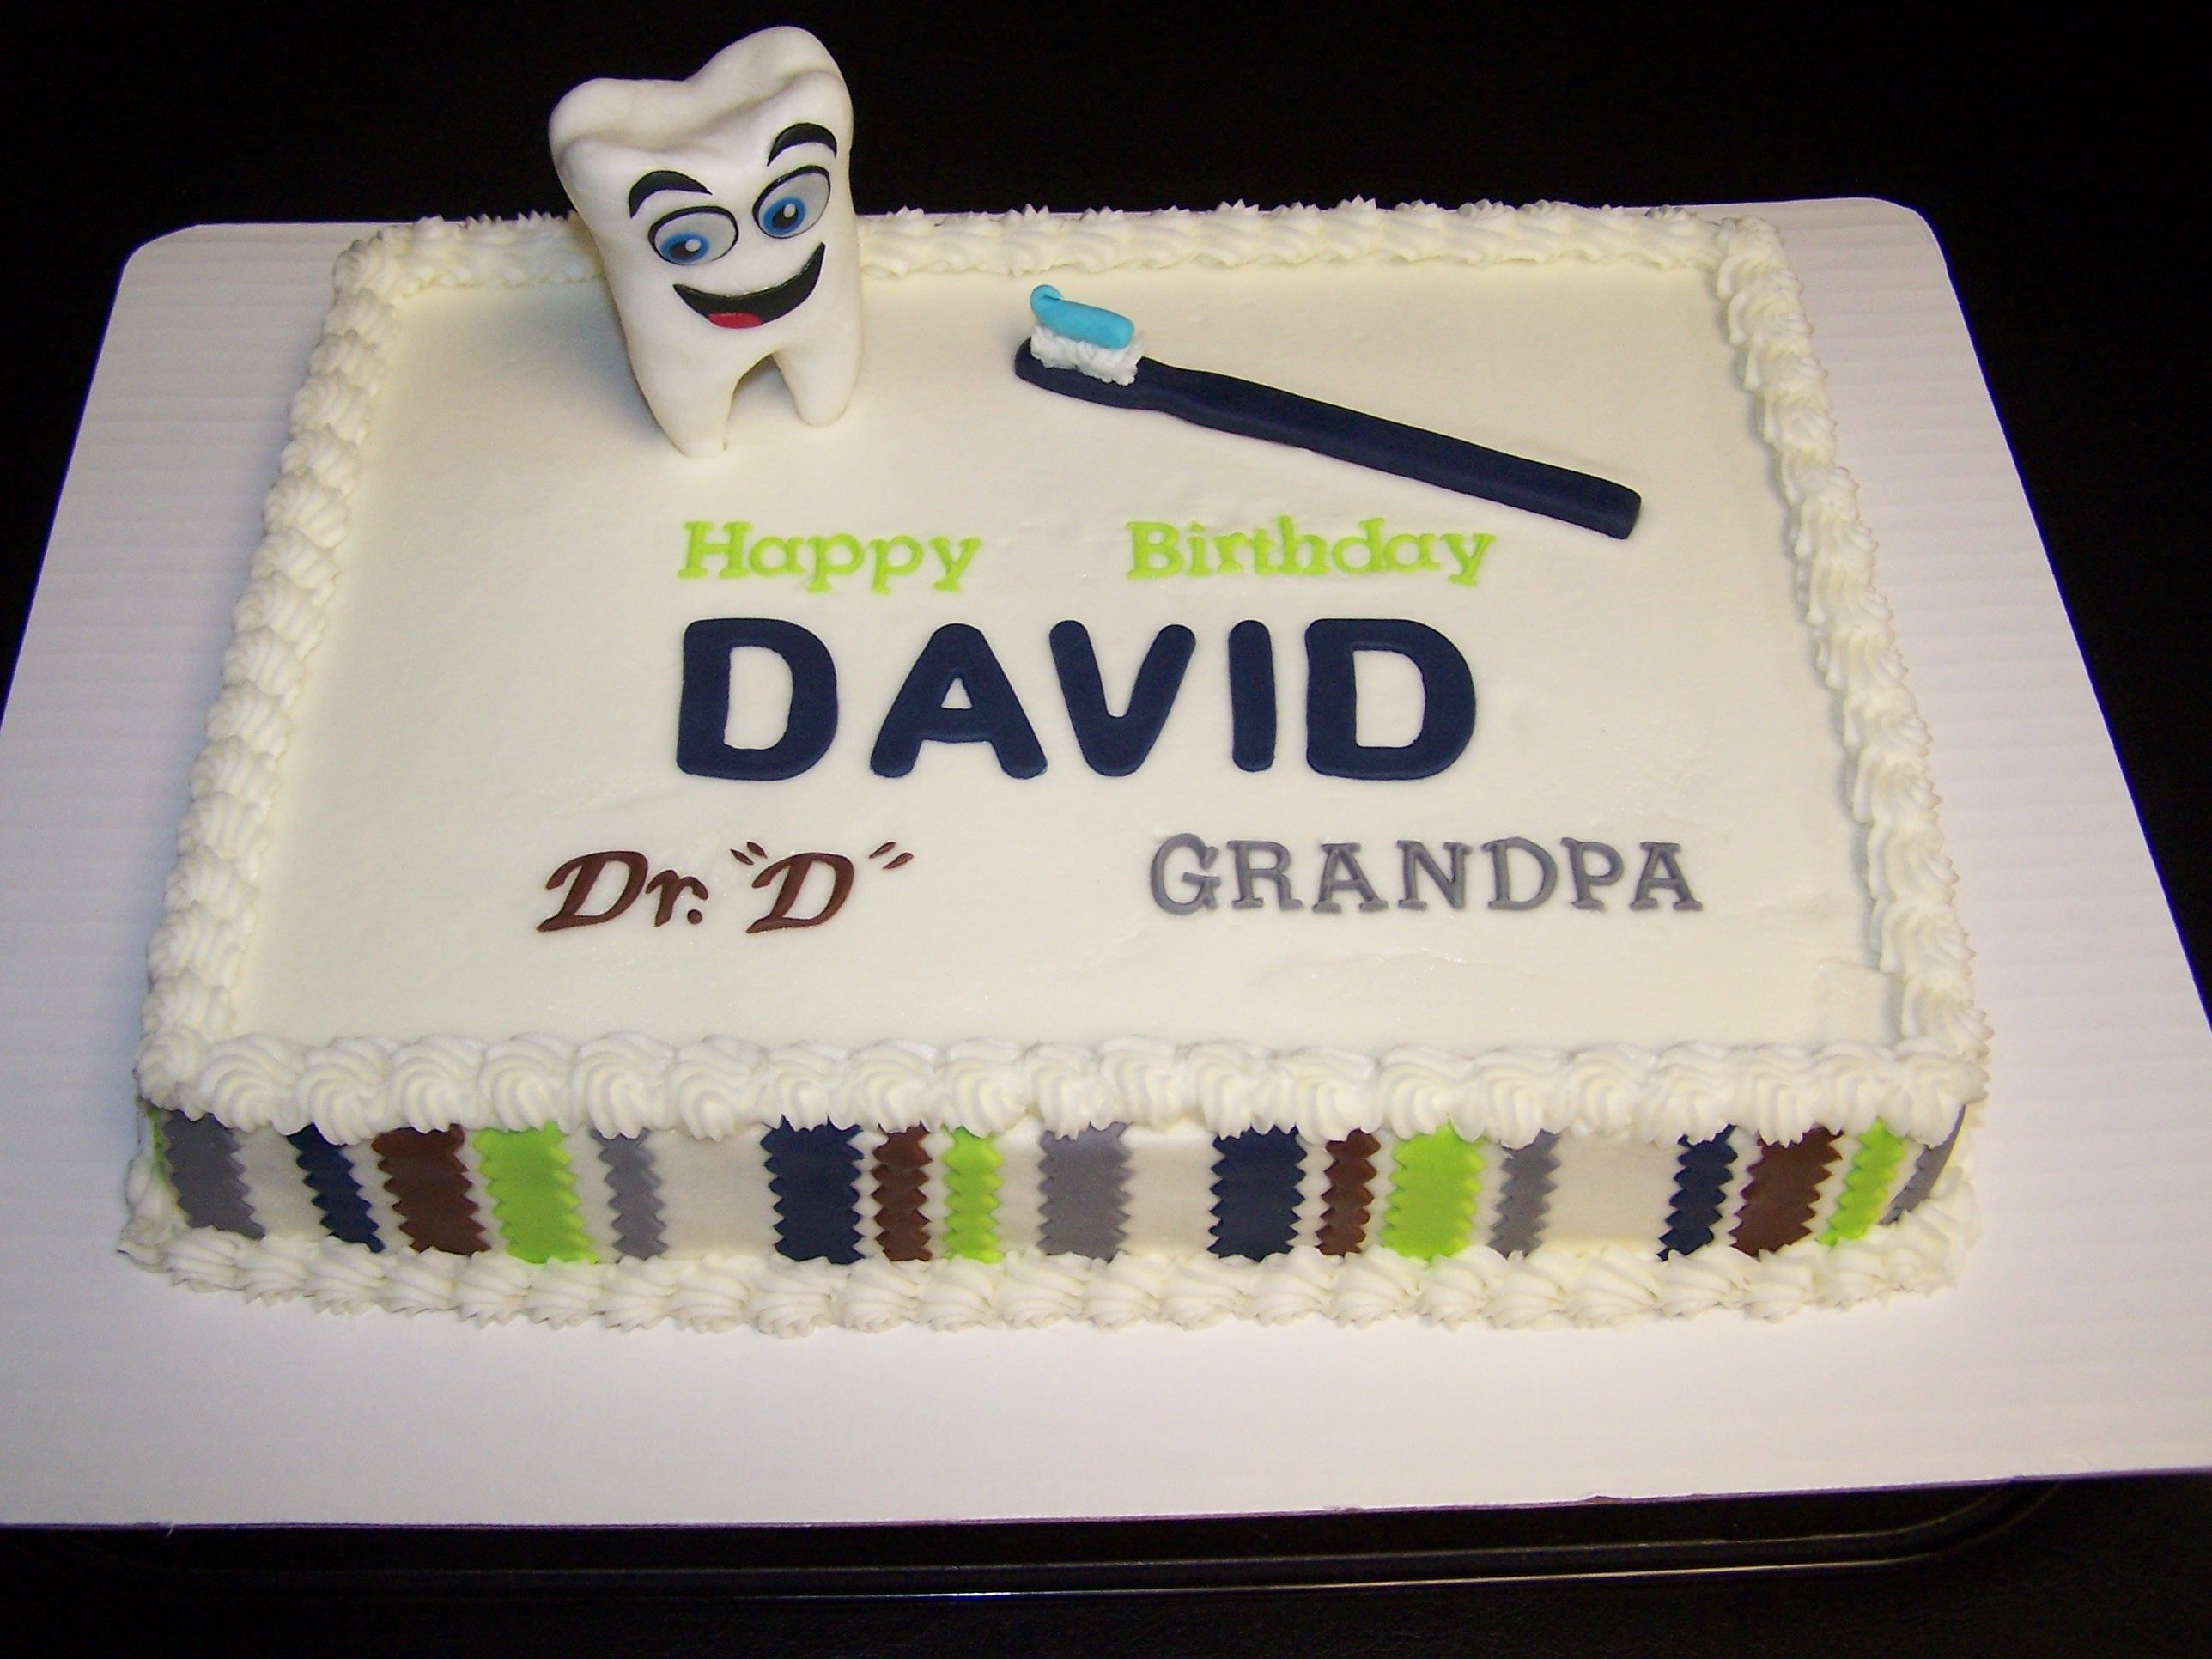 dr david drummond a dentist in bentonville celebrated his